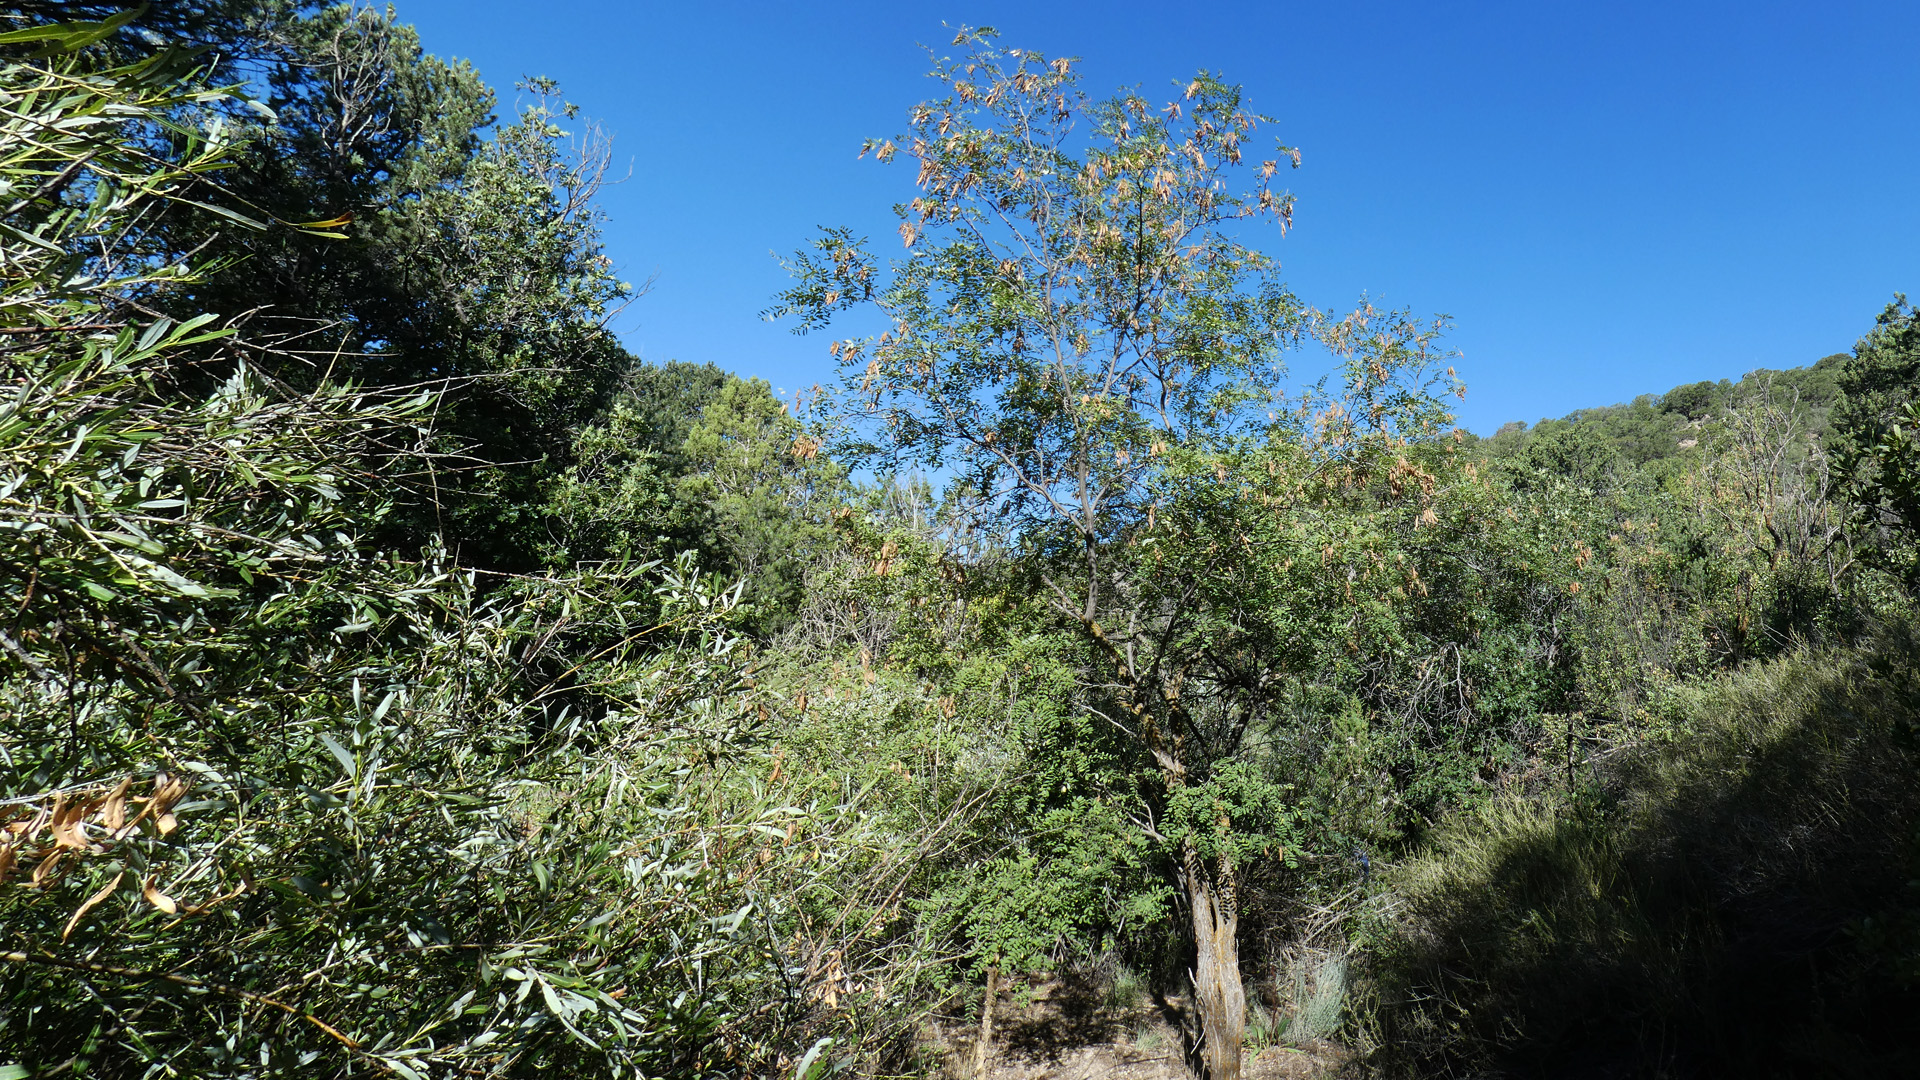 Tree at right of center, Sandia Mountains, September 2020